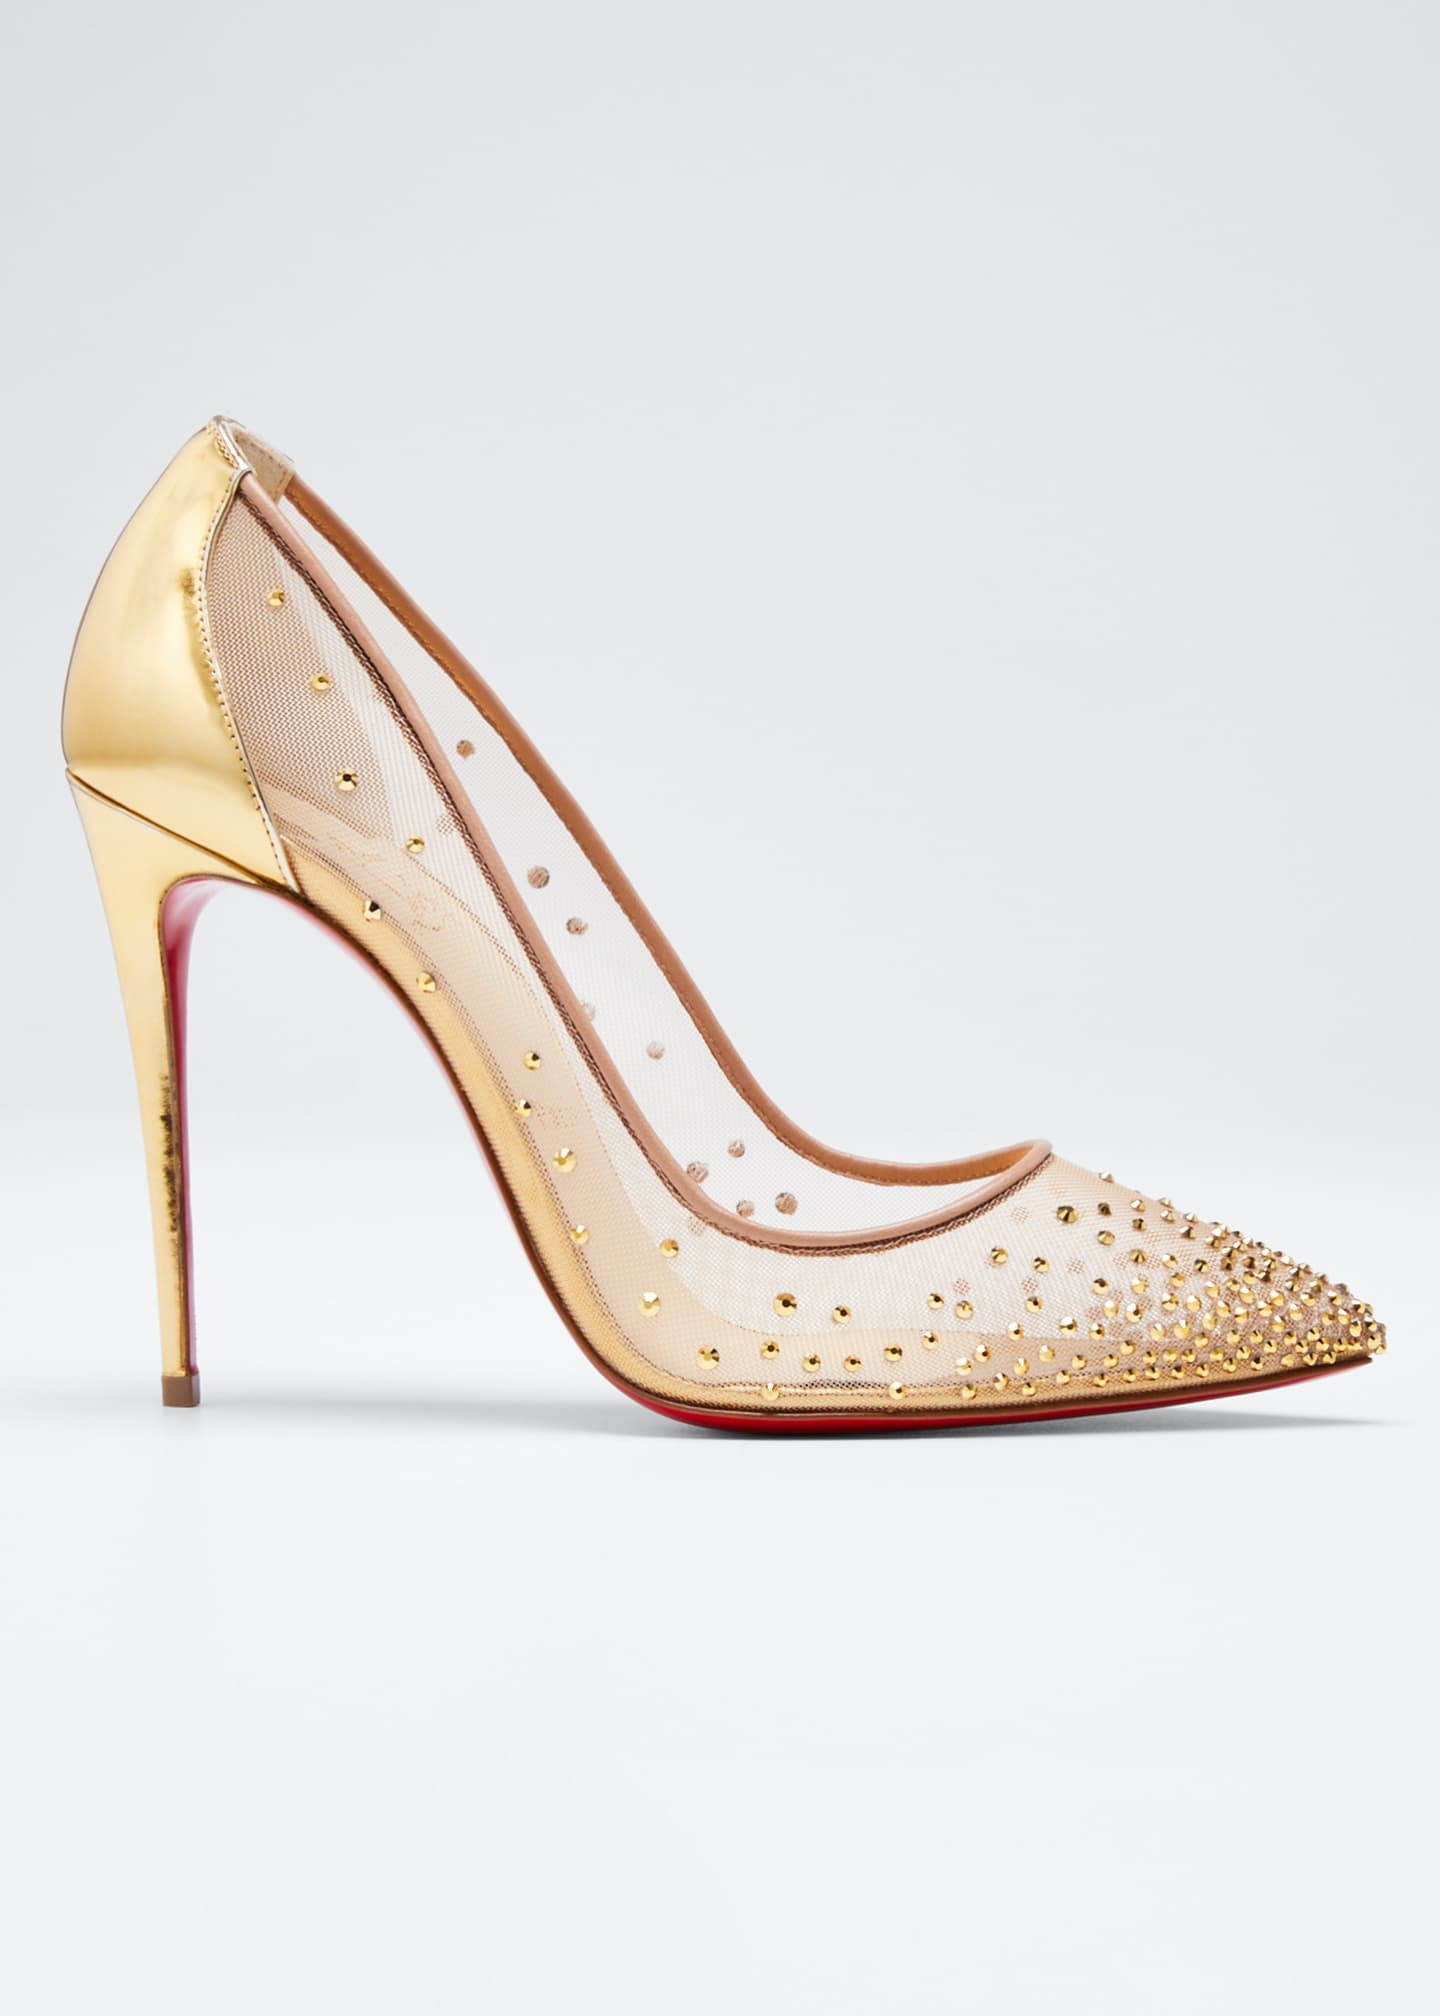 Christian Louboutin Follies Strass Crystal Mesh Red Sole